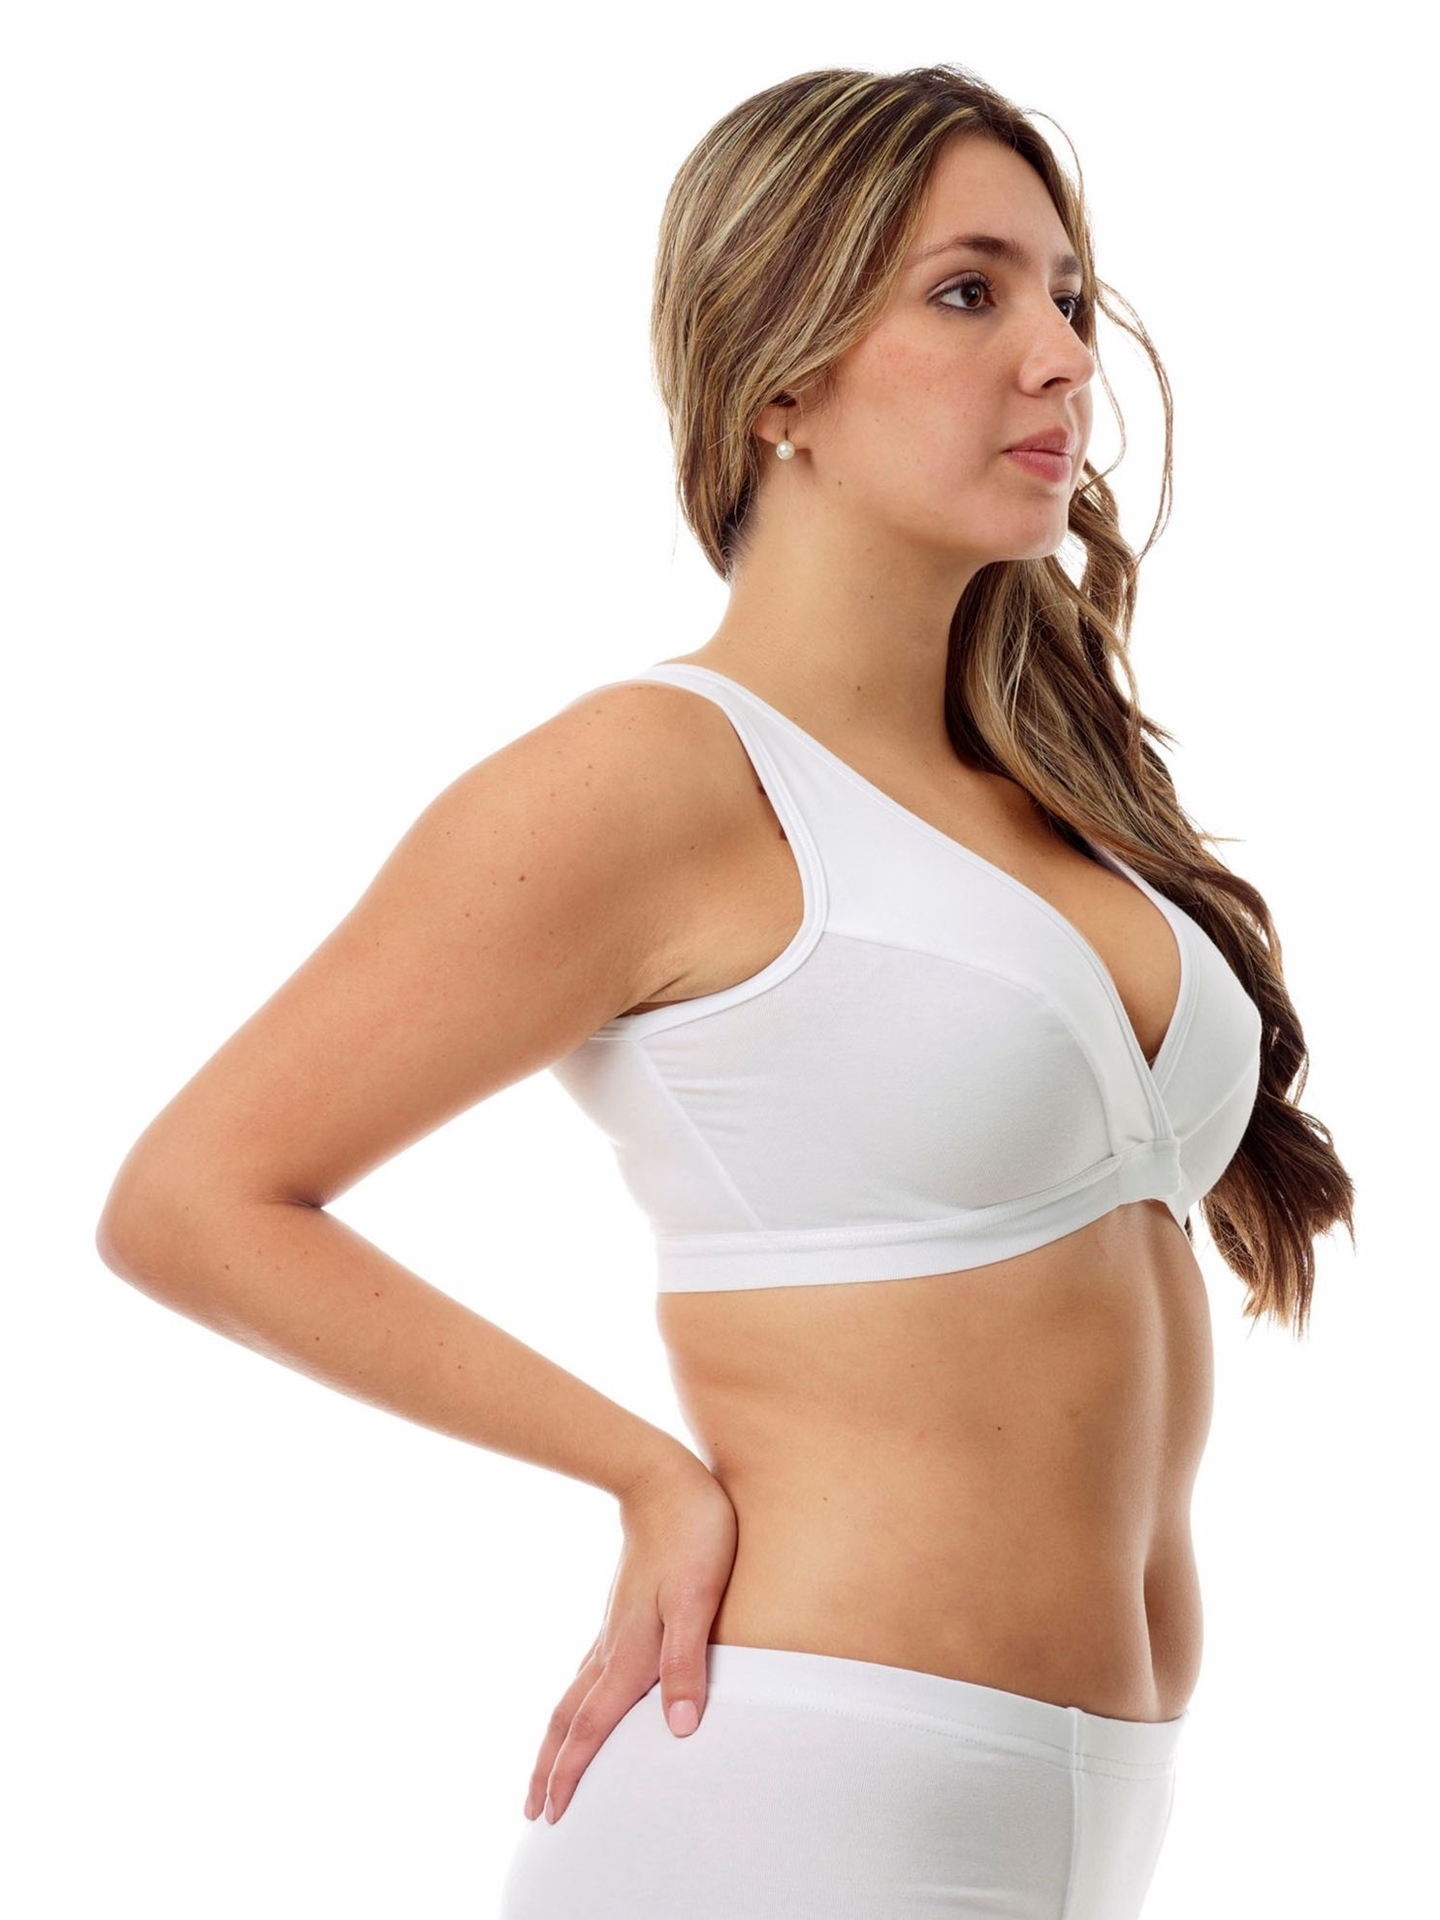 Arthritis Bras For Women With Physical Limitations